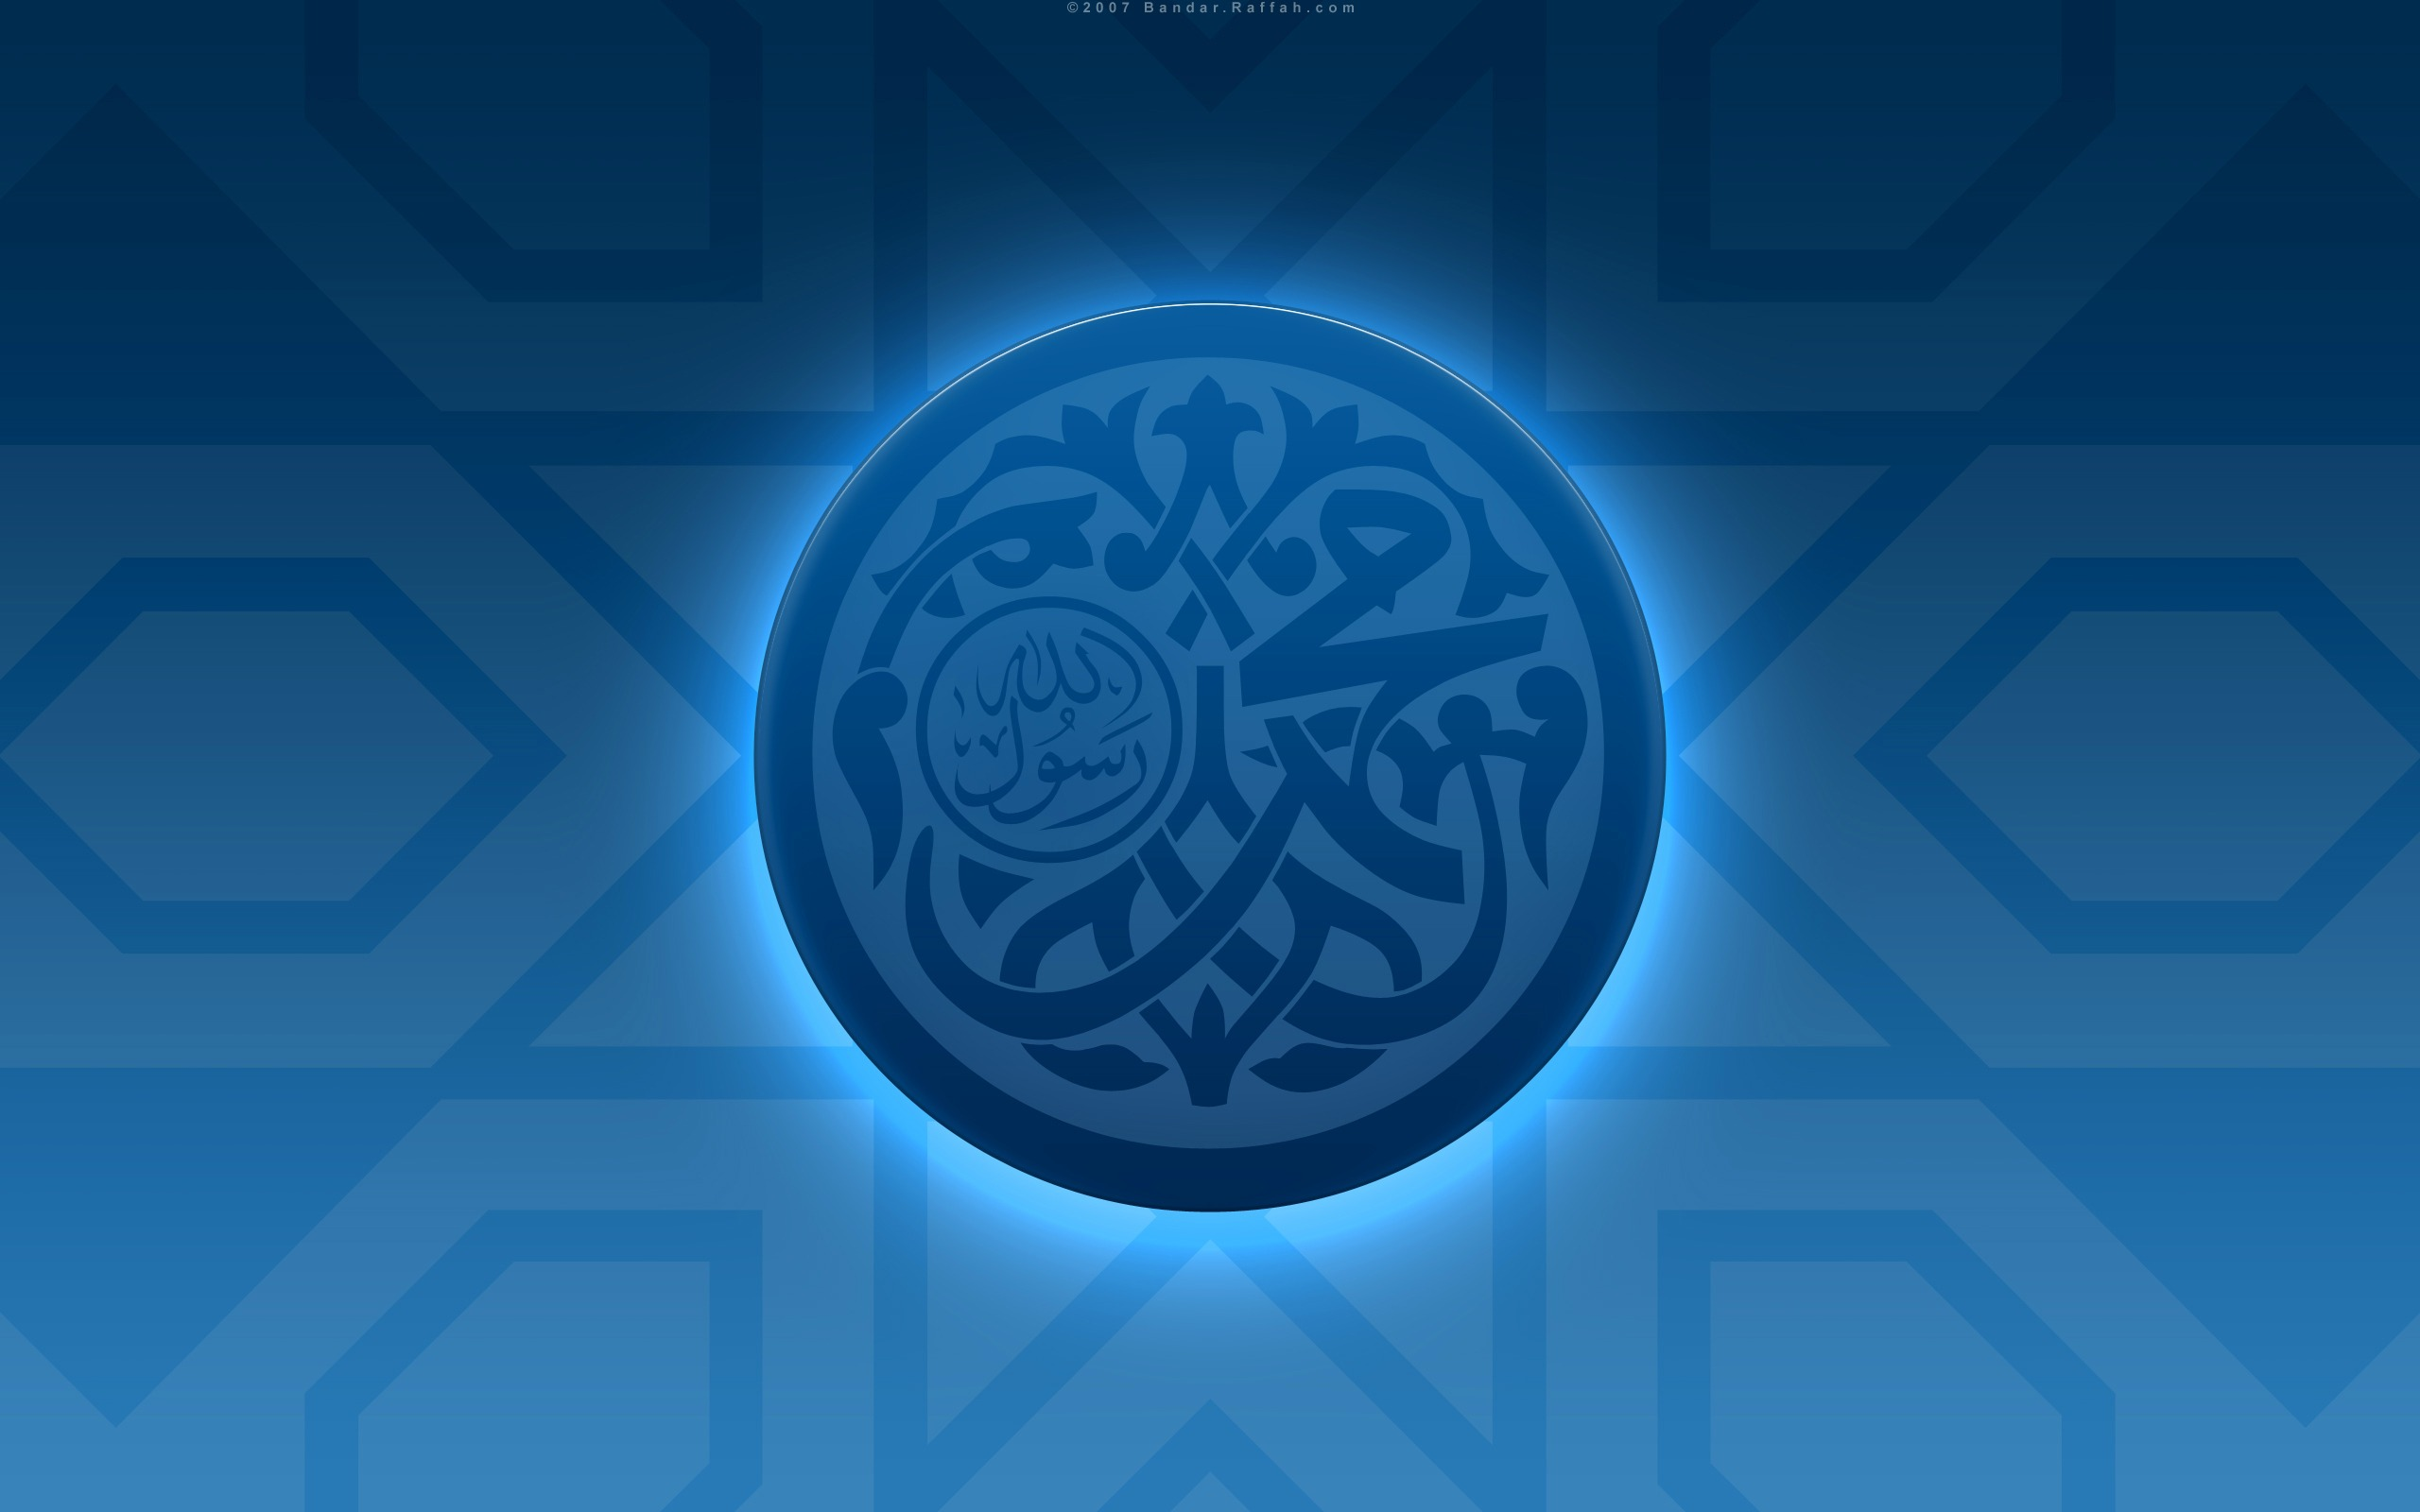 Quran Images High Resolution Islam Full HD F...